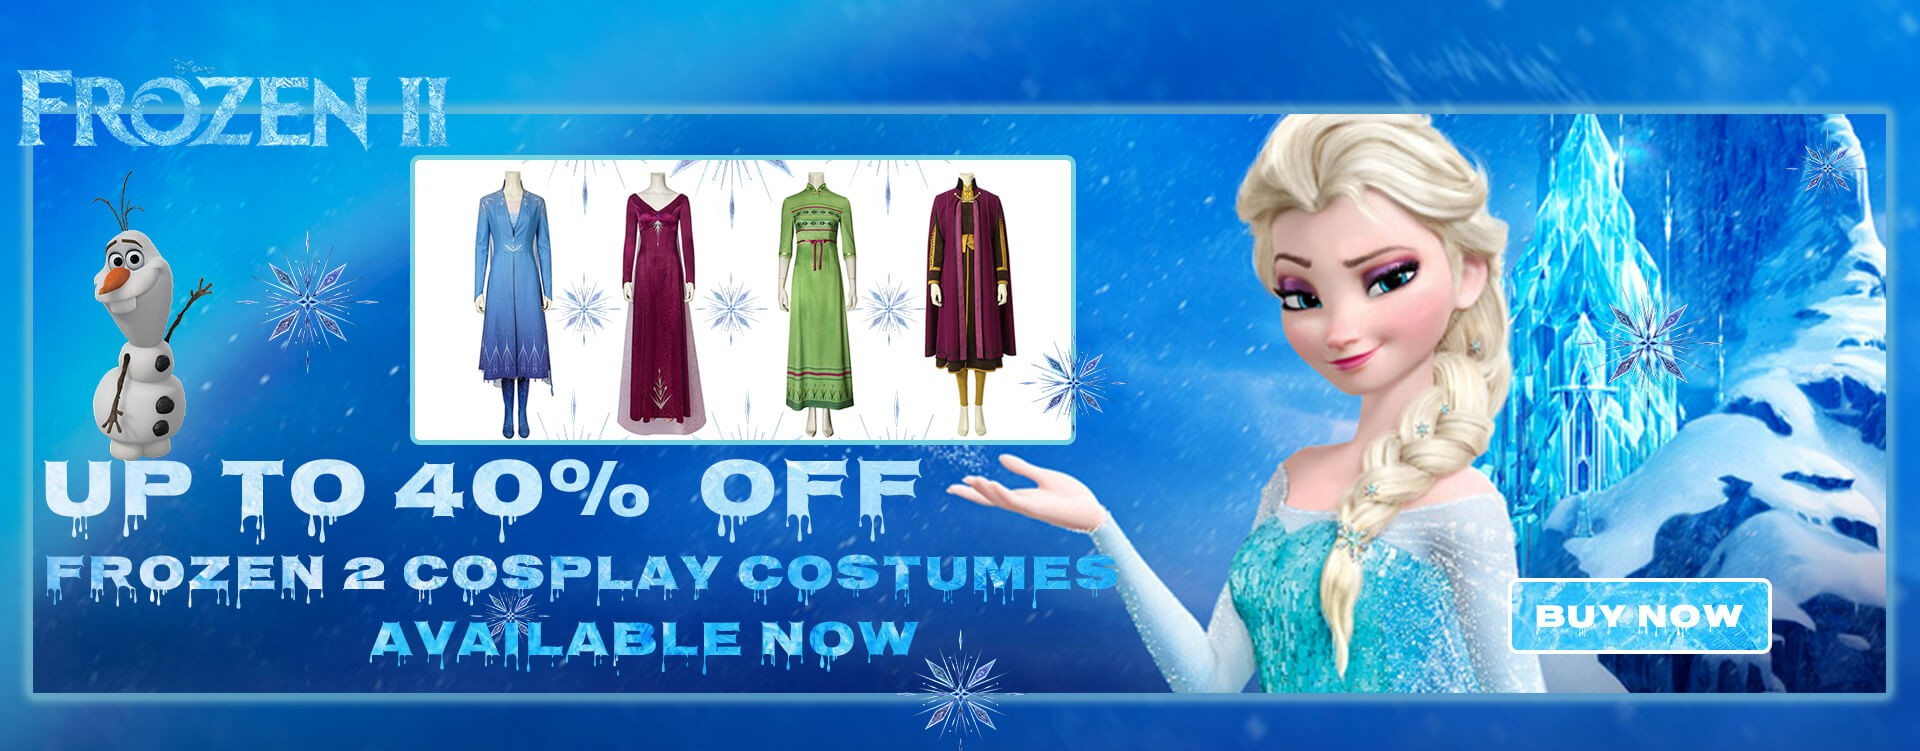 Frozen 2 Cosplay Costumes Availble Now UP to 40% OFF